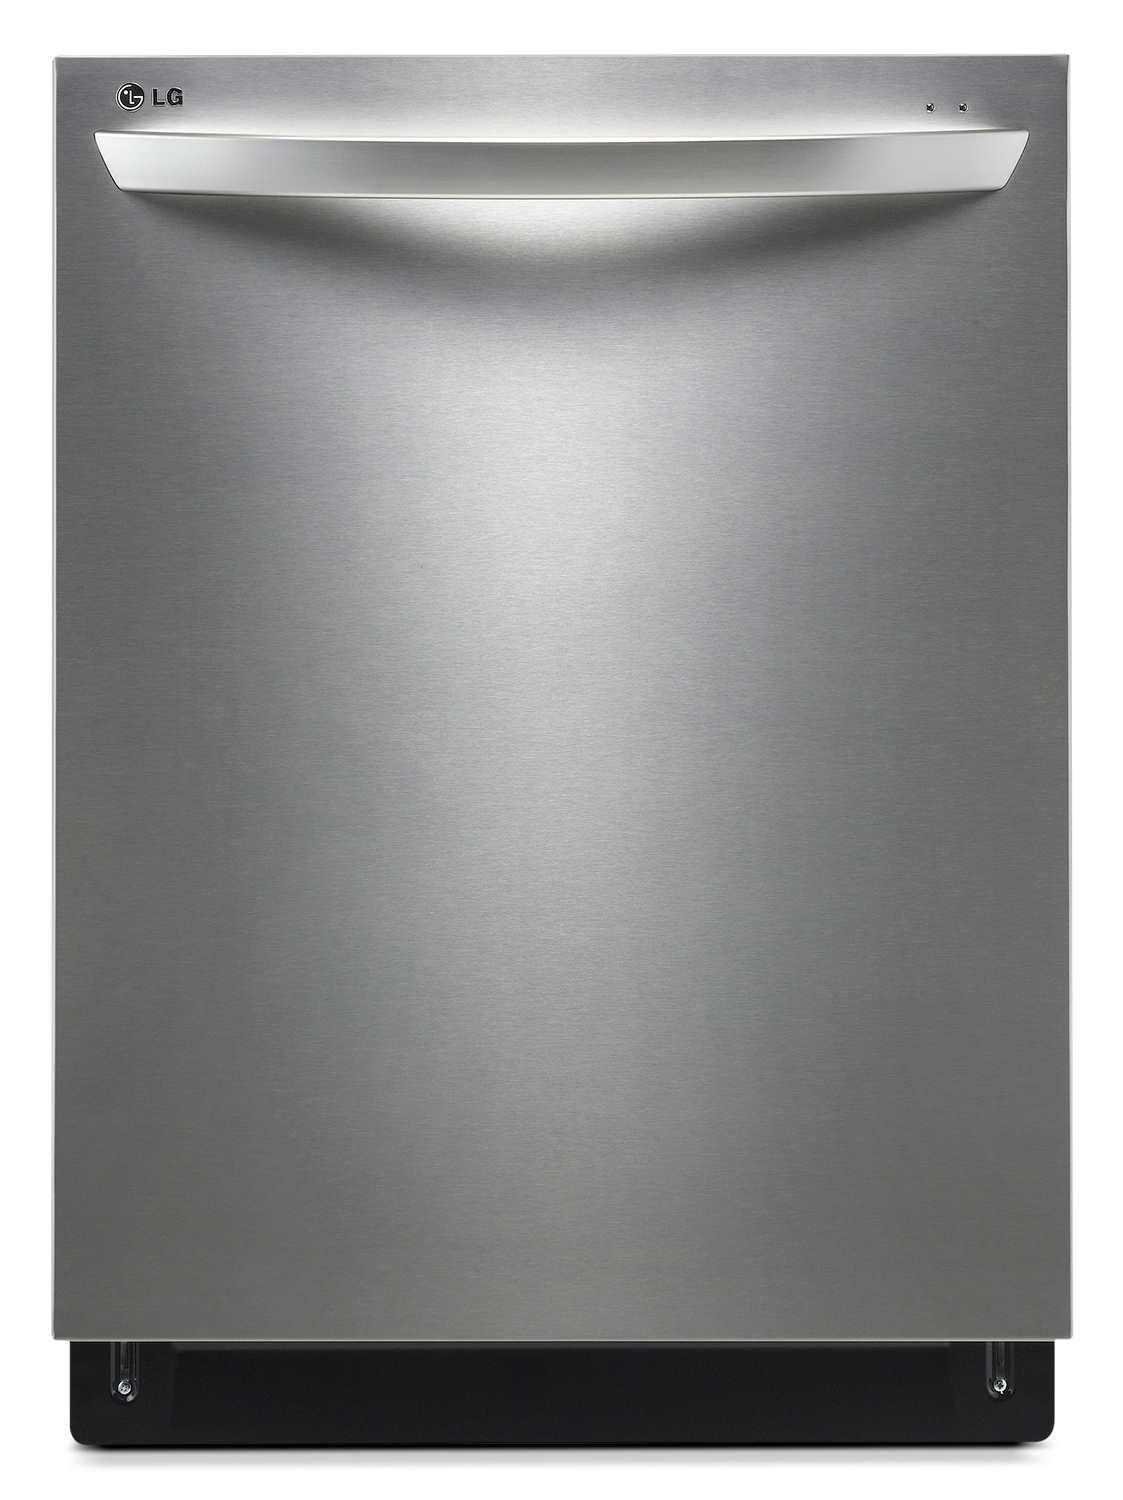 "LG Appliances Stainless Steel 24"" Dishwasher - LDF7774ST"